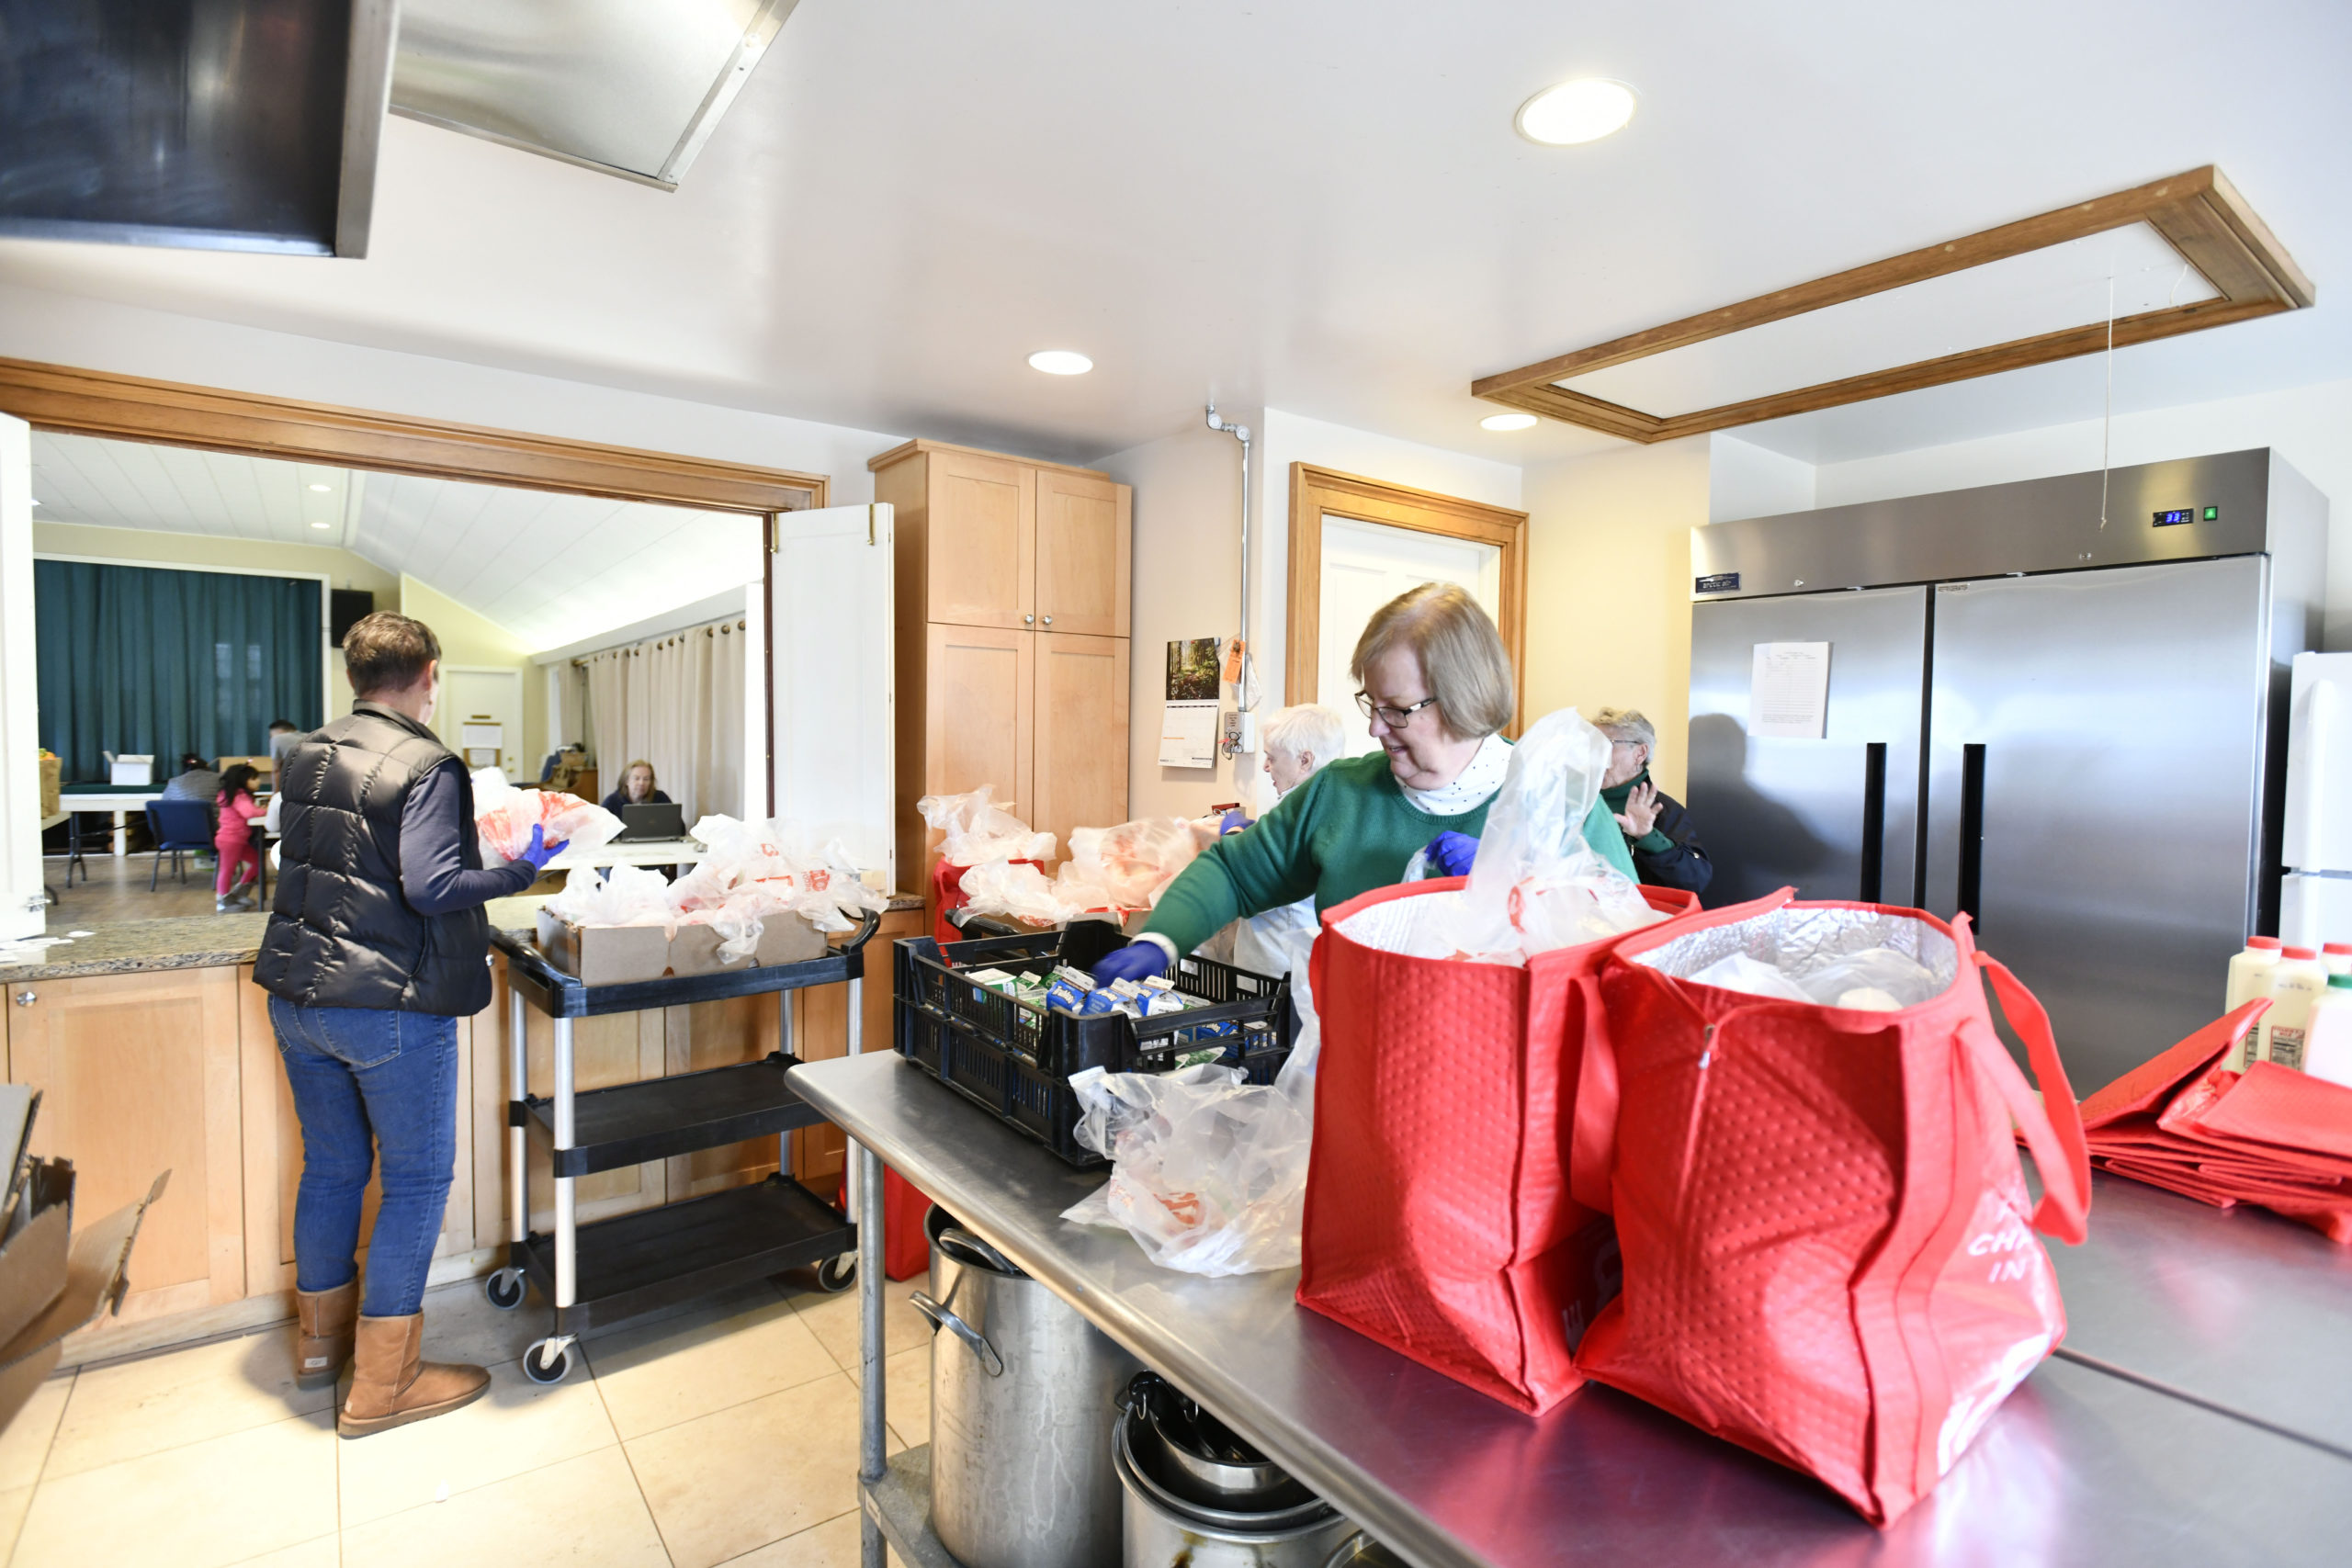 Linda Maconochie, Holly Wheaton and Deanna Tikkanen pack and distribute bags of food at the Springs Food Panrty on Wednesday, March 18.  DANA SHAW